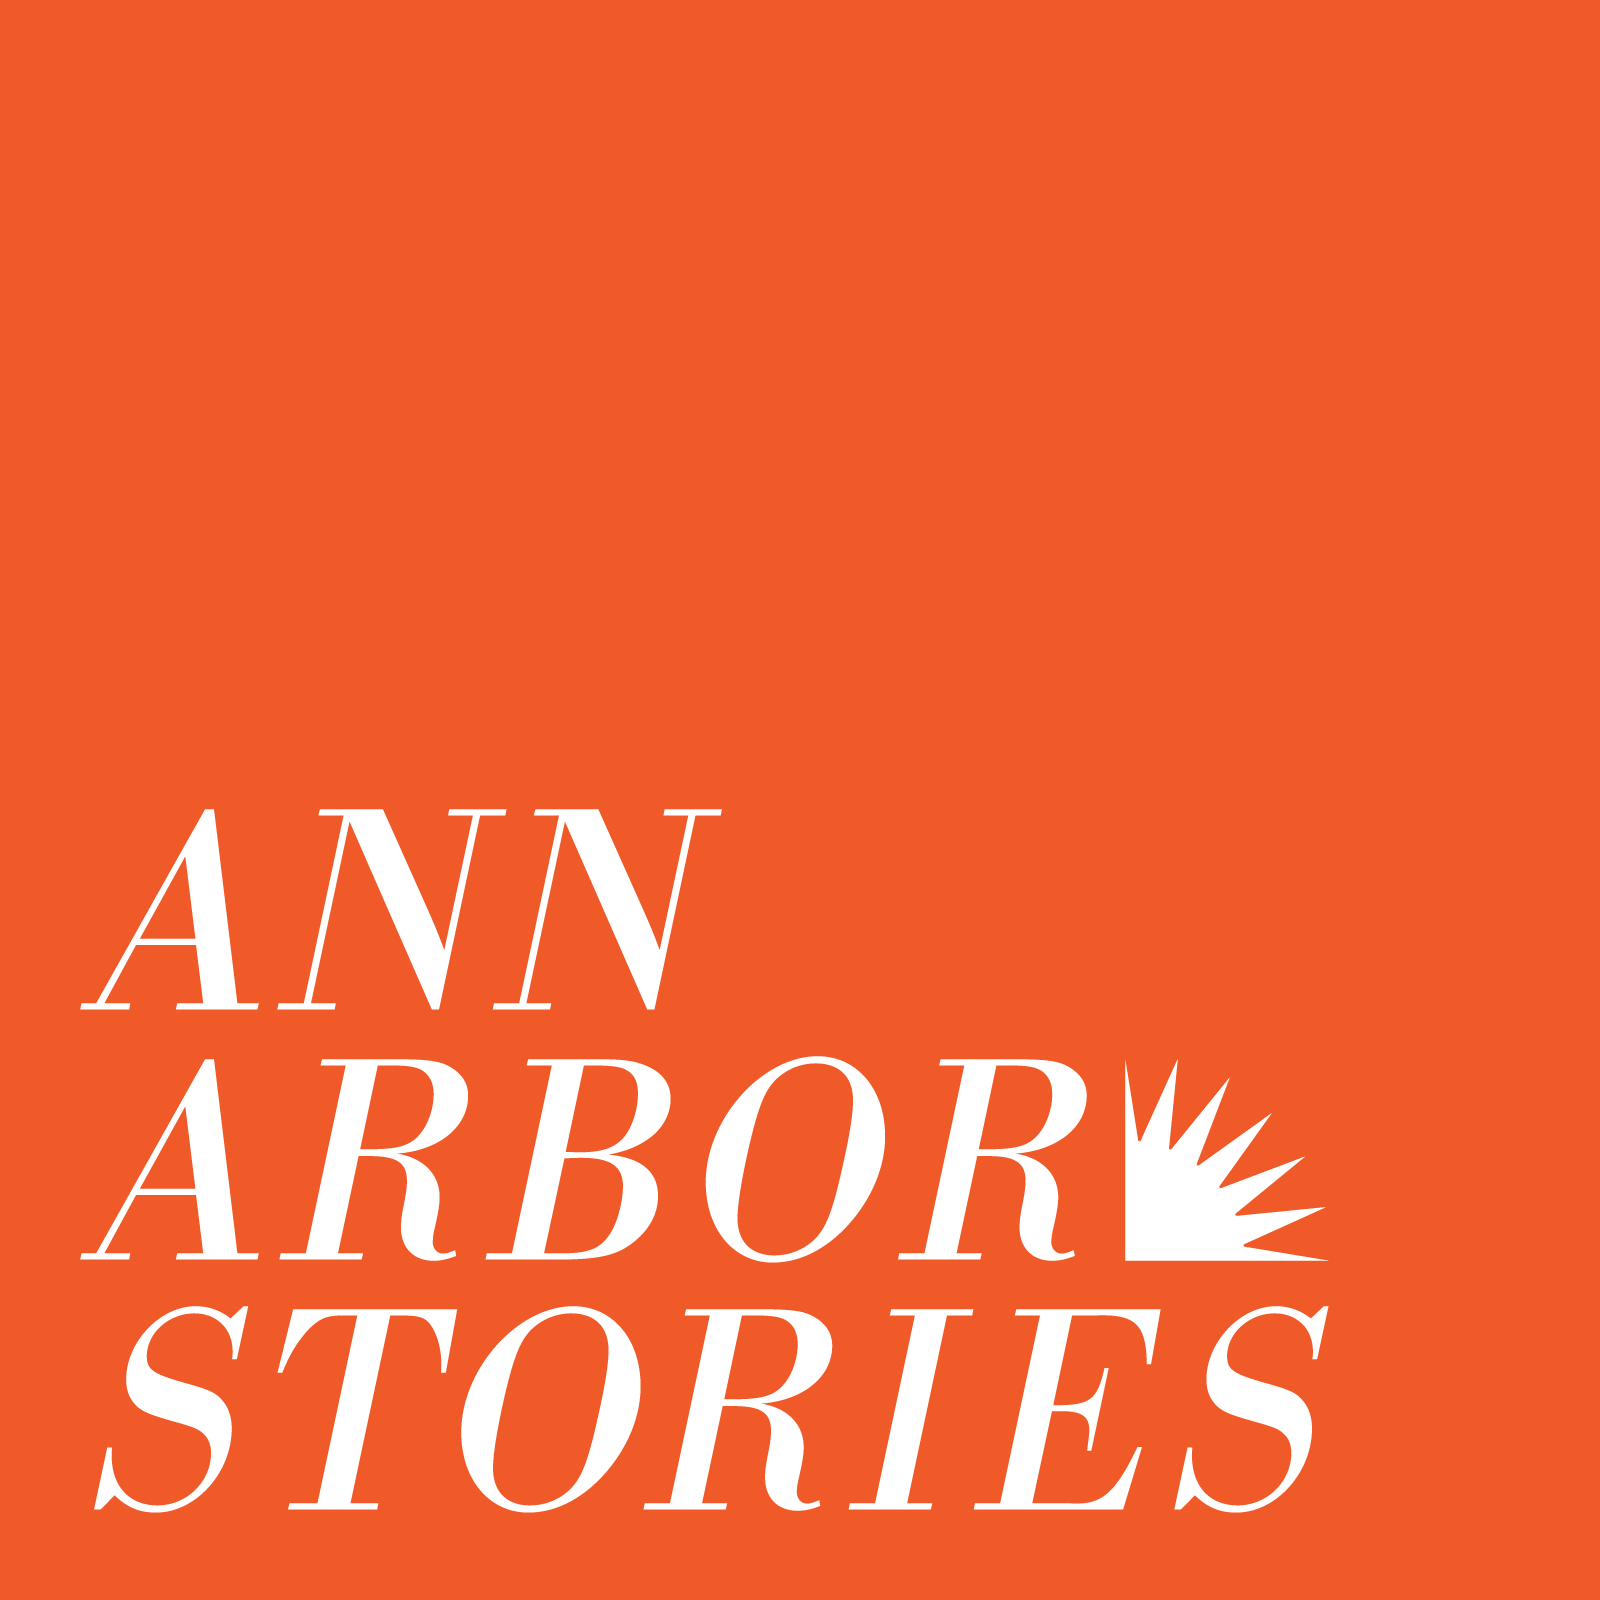 Promotional image for #46 Ann Arbor Stories: The Battle of Ann Arbor podcast